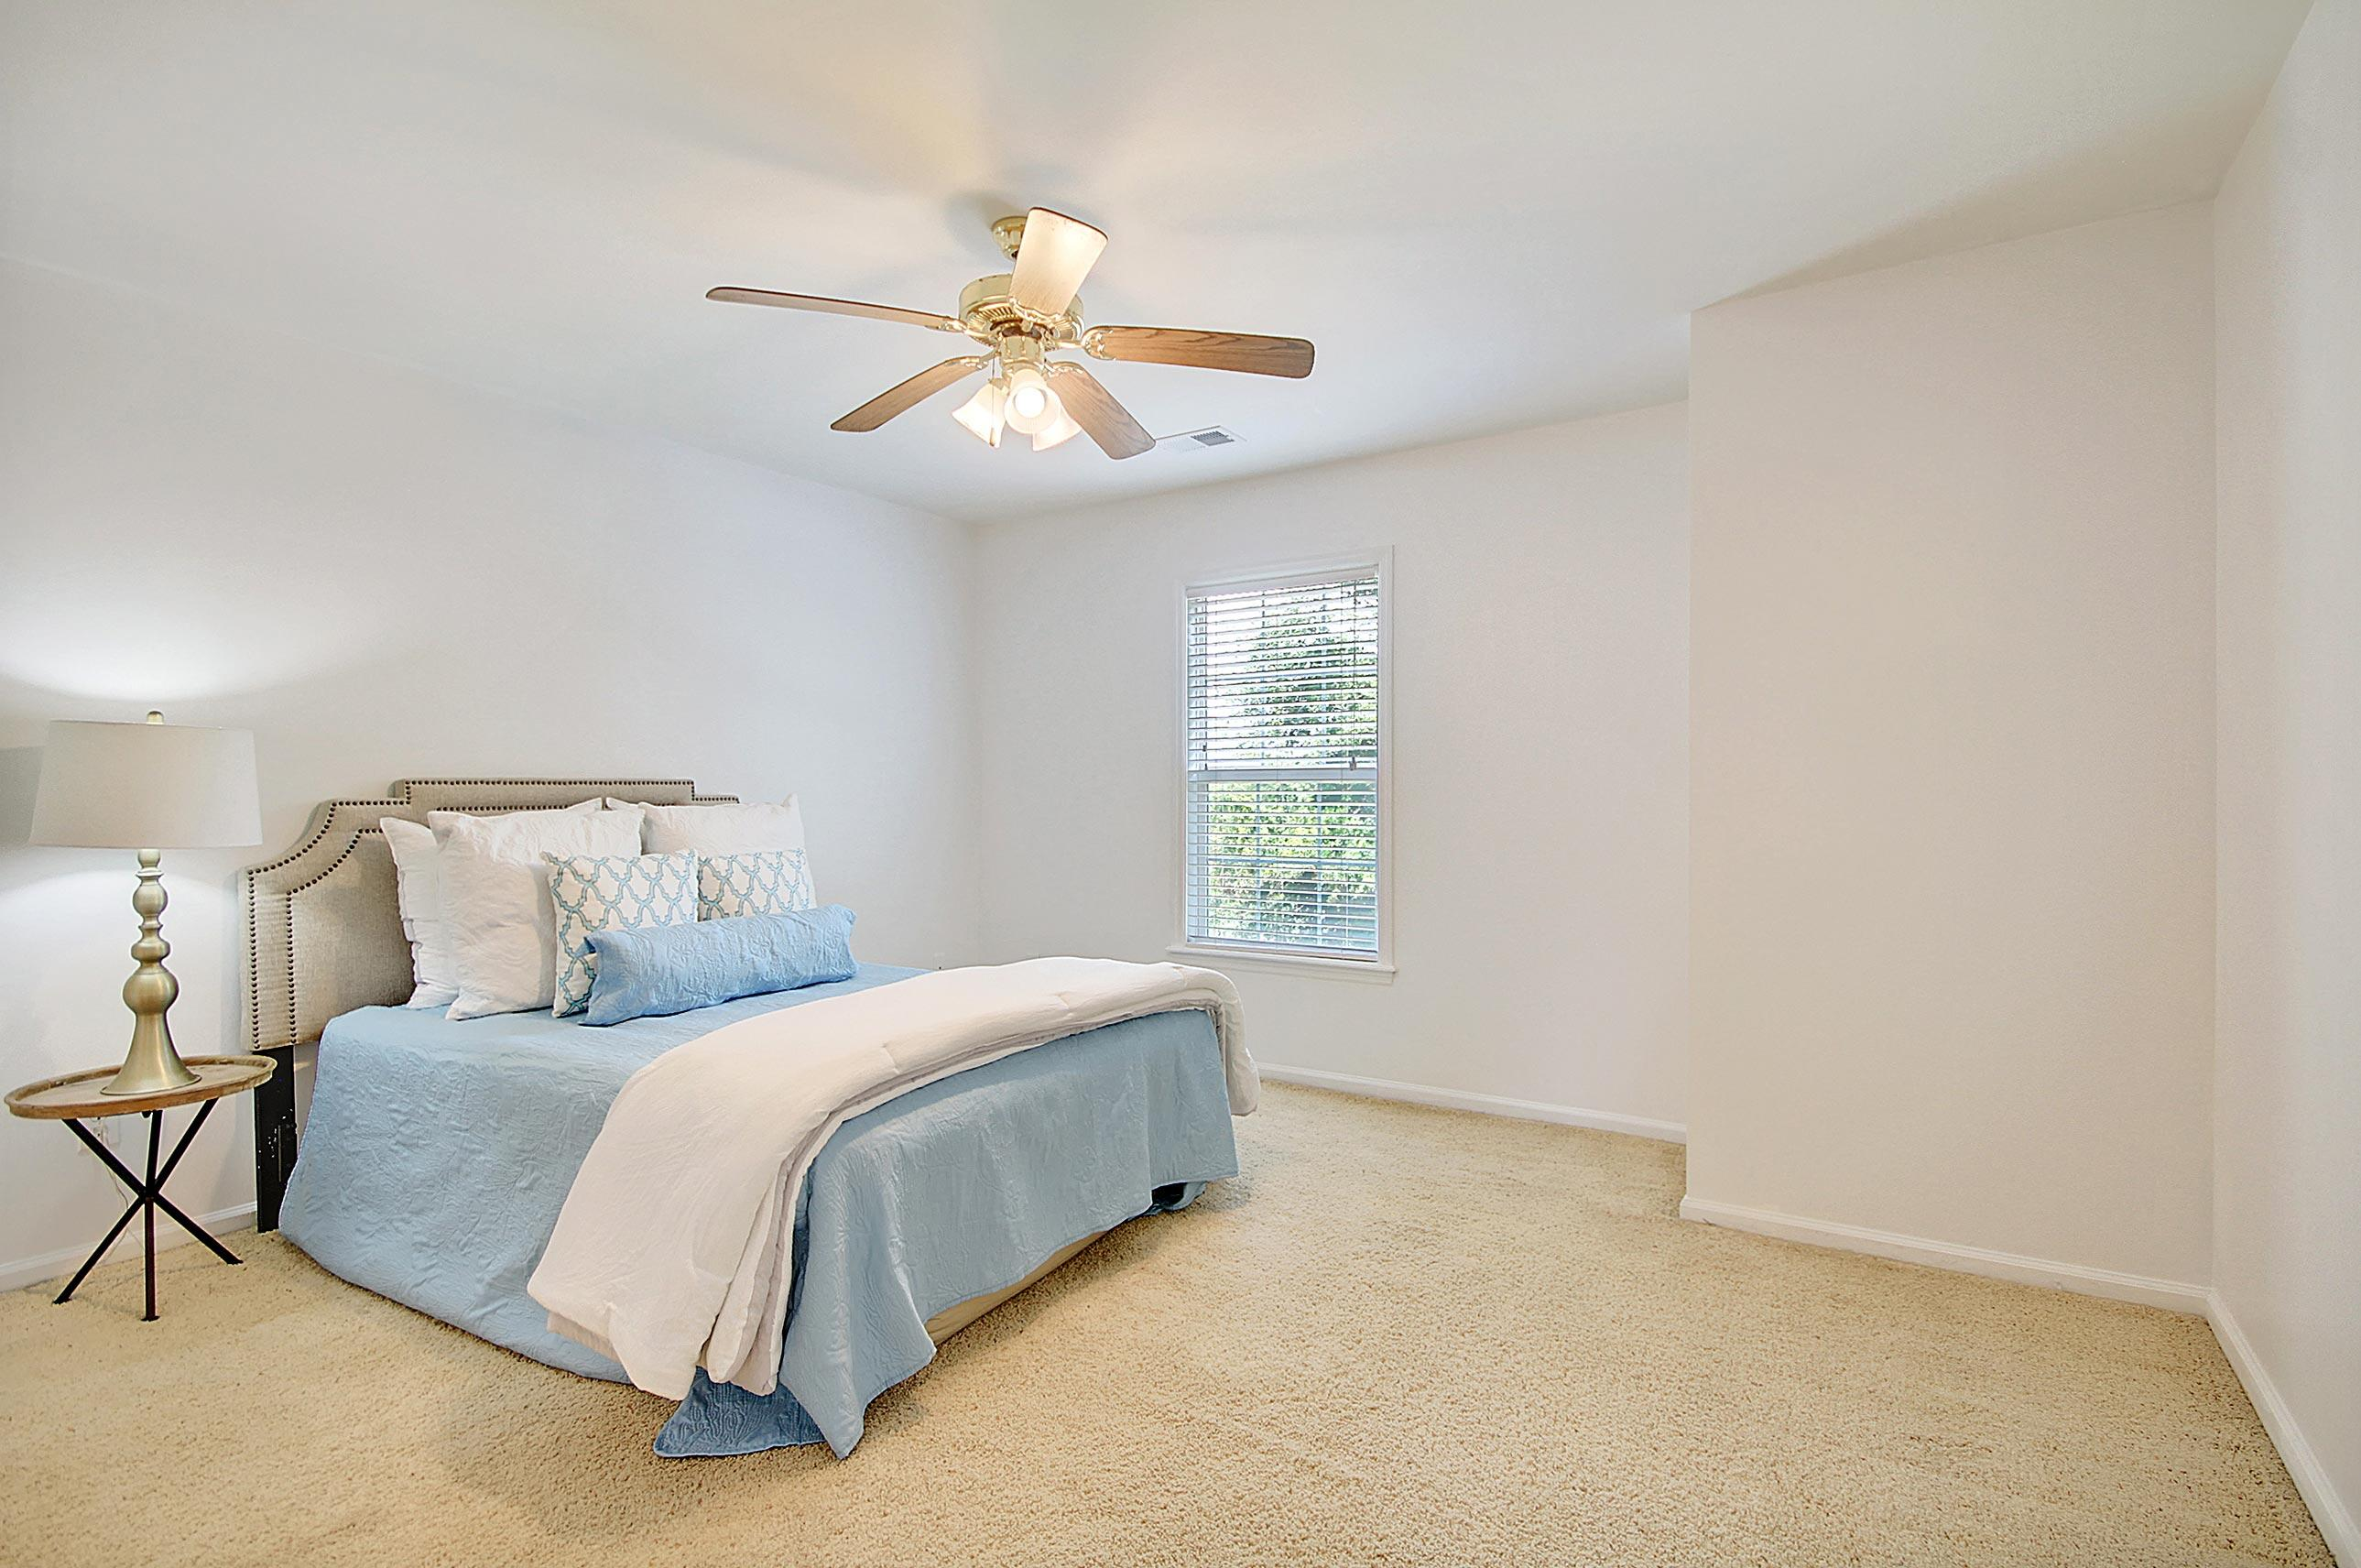 Rivers Point Row Homes For Sale - 37 Rivers Point, Charleston, SC - 6